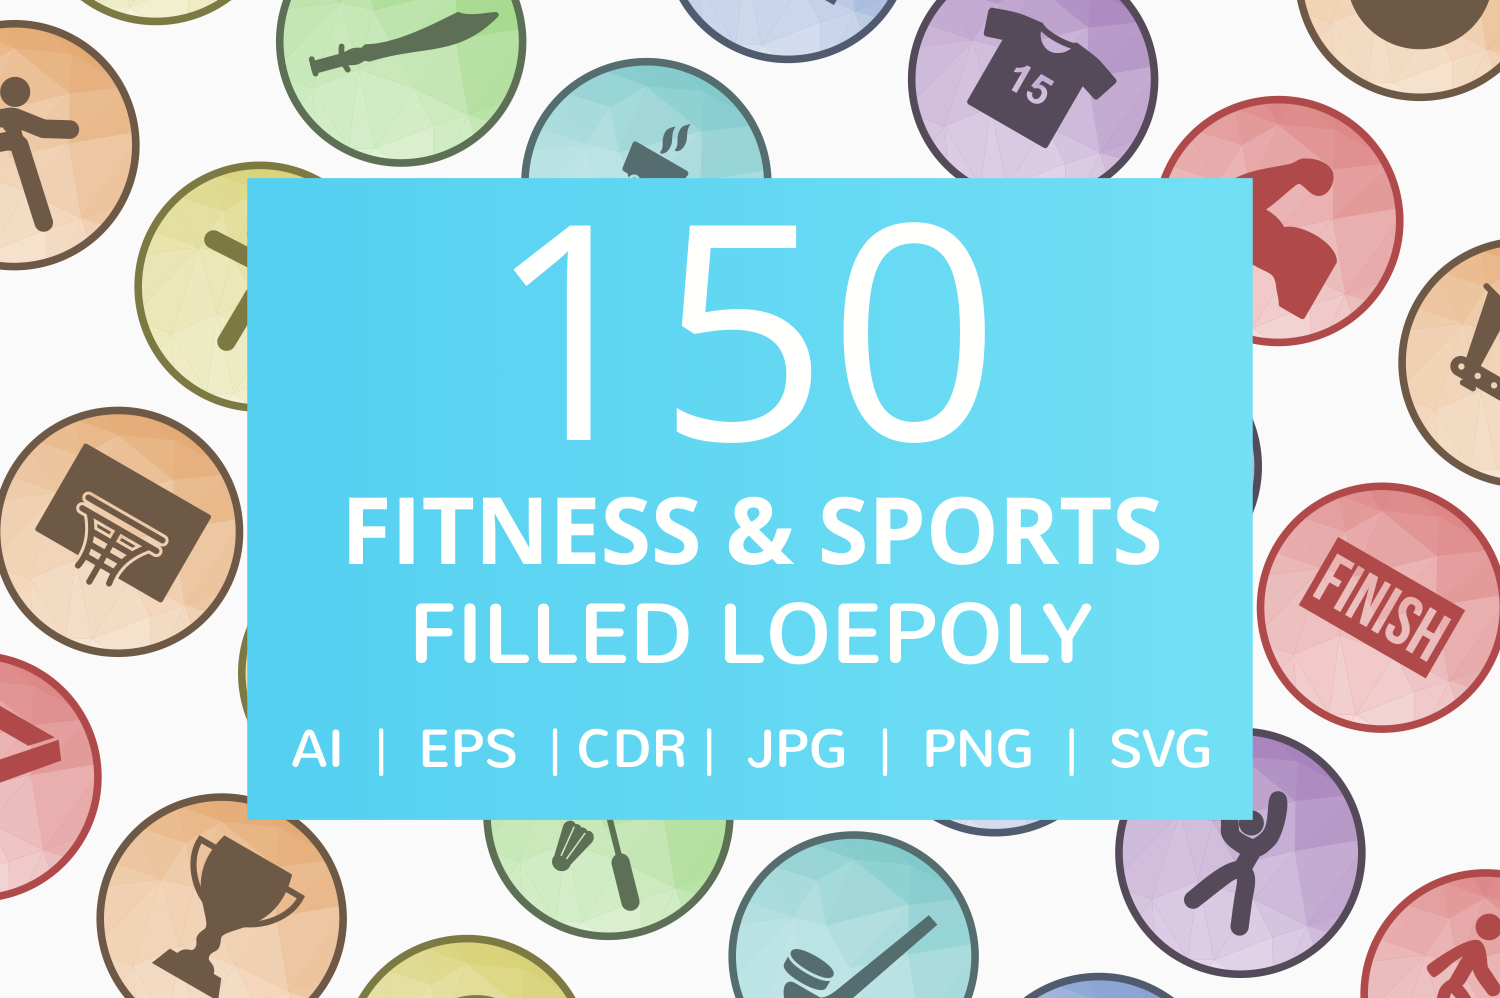 150 Fitness & Sports Filled Low Poly Icons example image 1